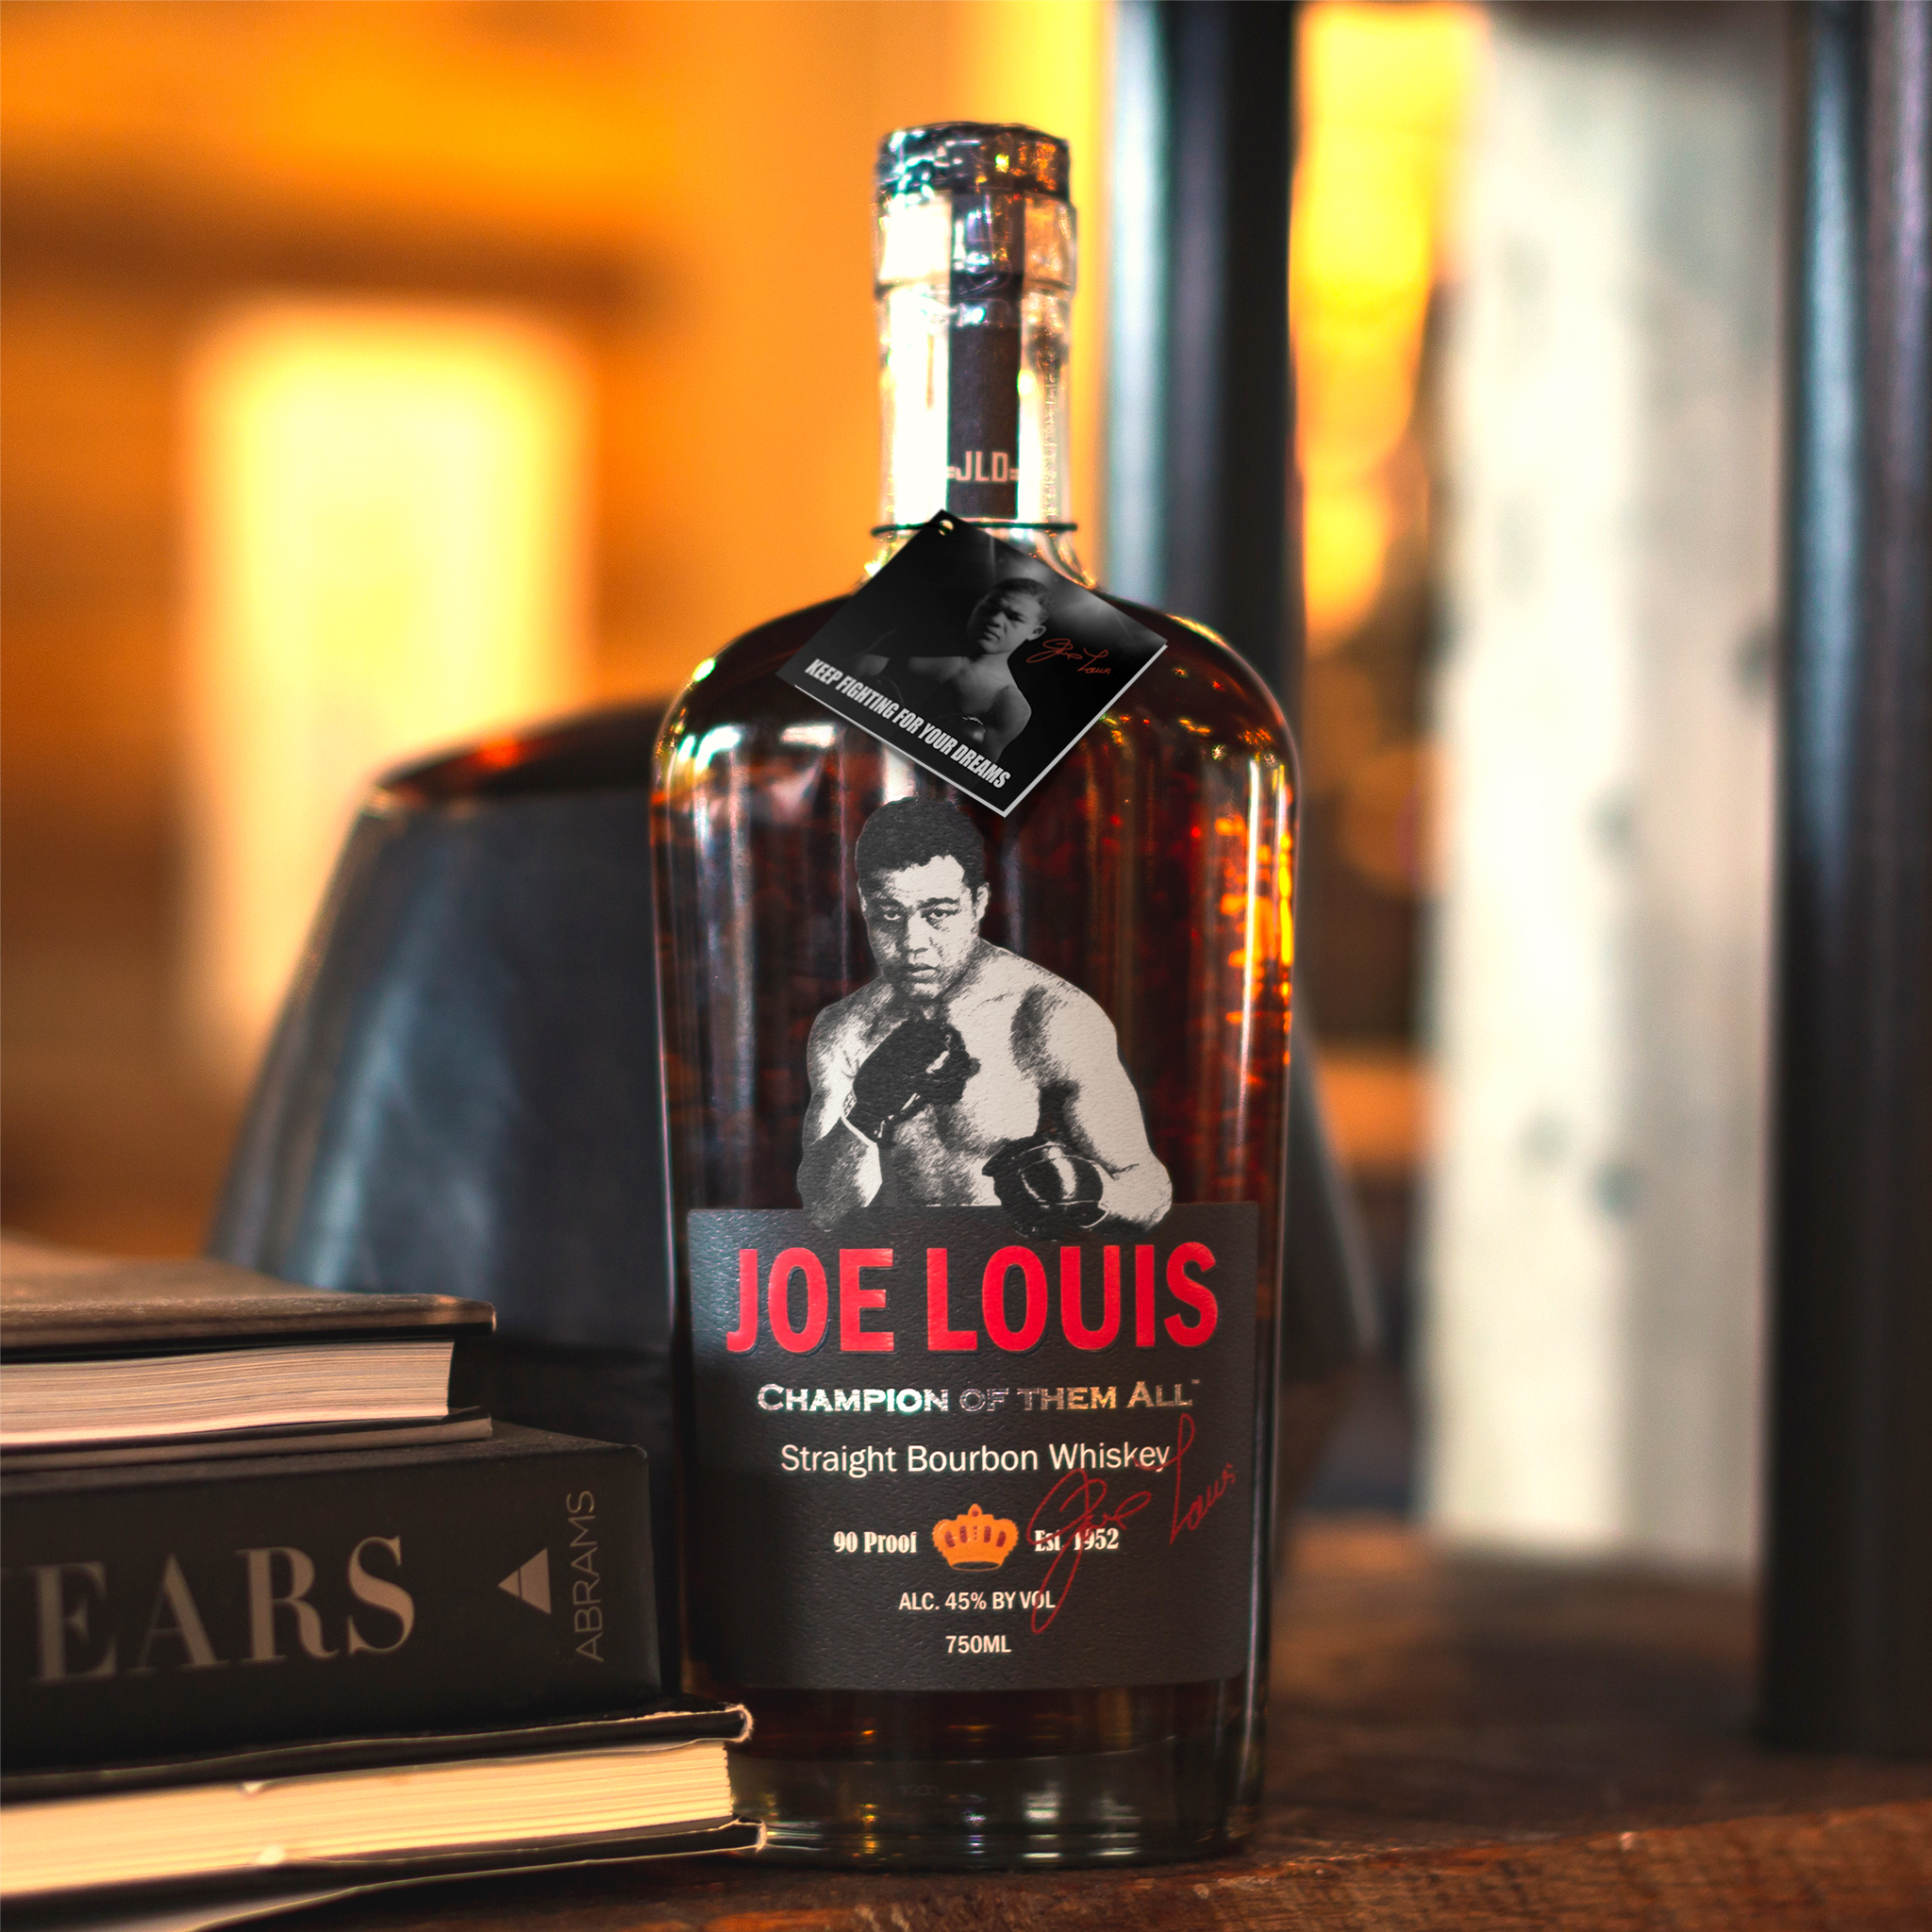 Joe Louis Bourbon Champion of them all - bottle and books, warm background